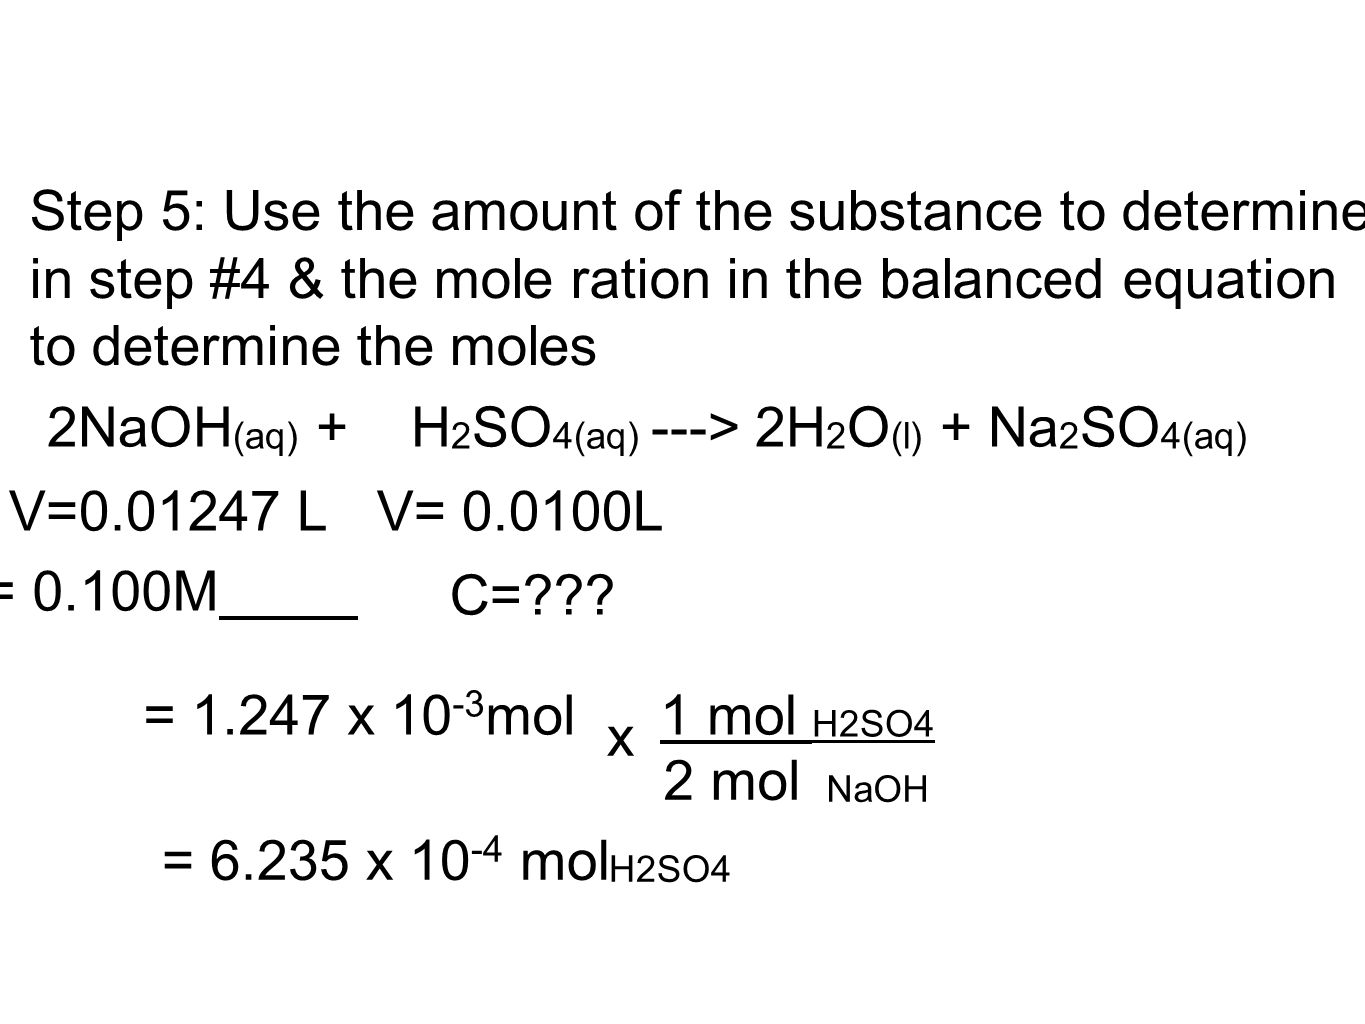 how to find the amount of moles in 100ml